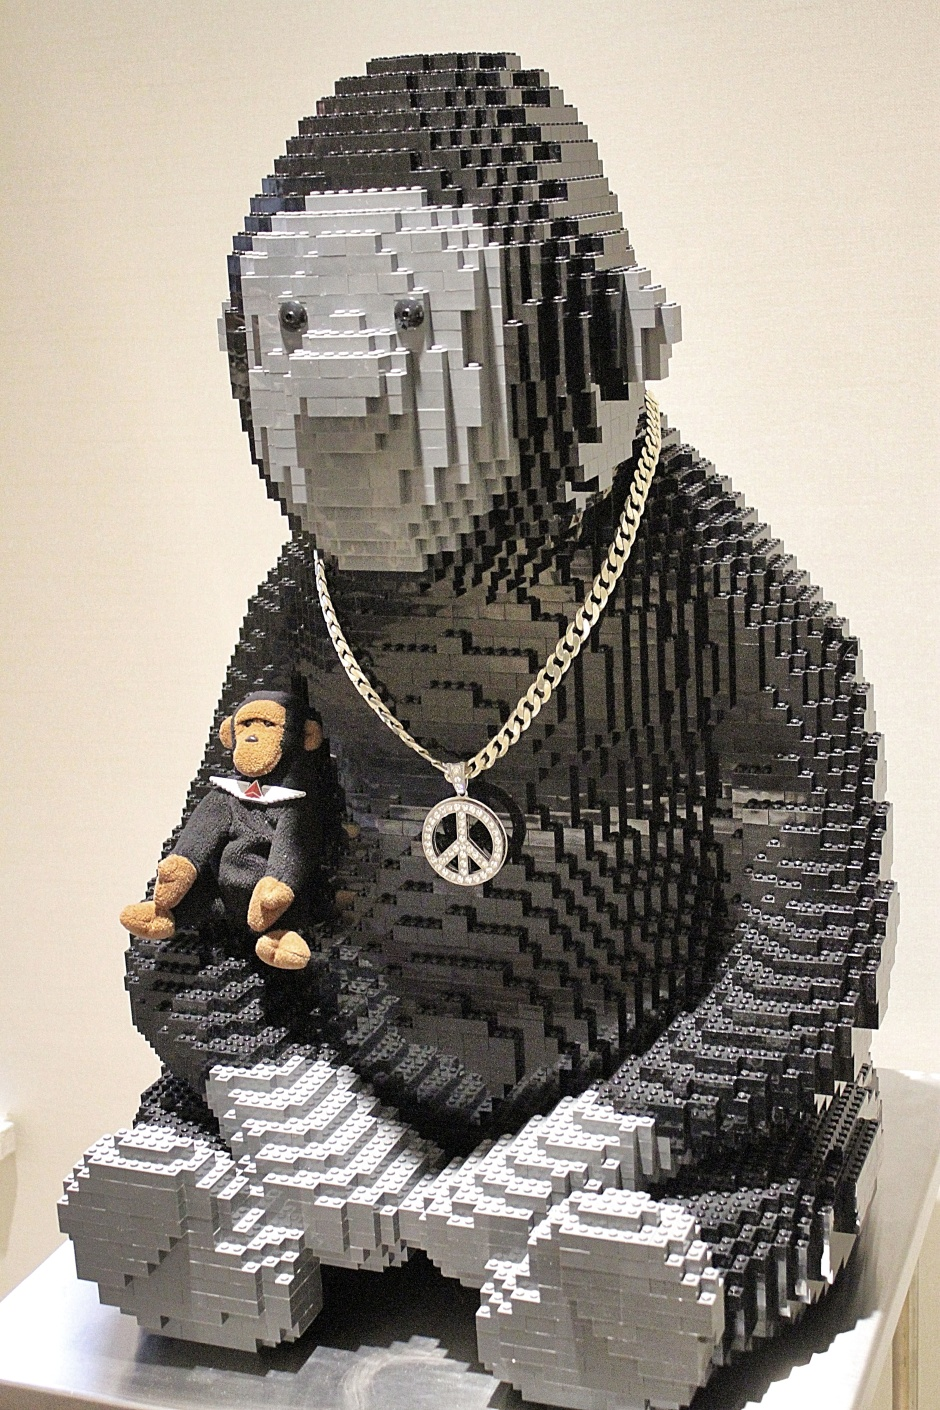 A big monkey made of Legos with a bling necklace greets Kongo in the dining room